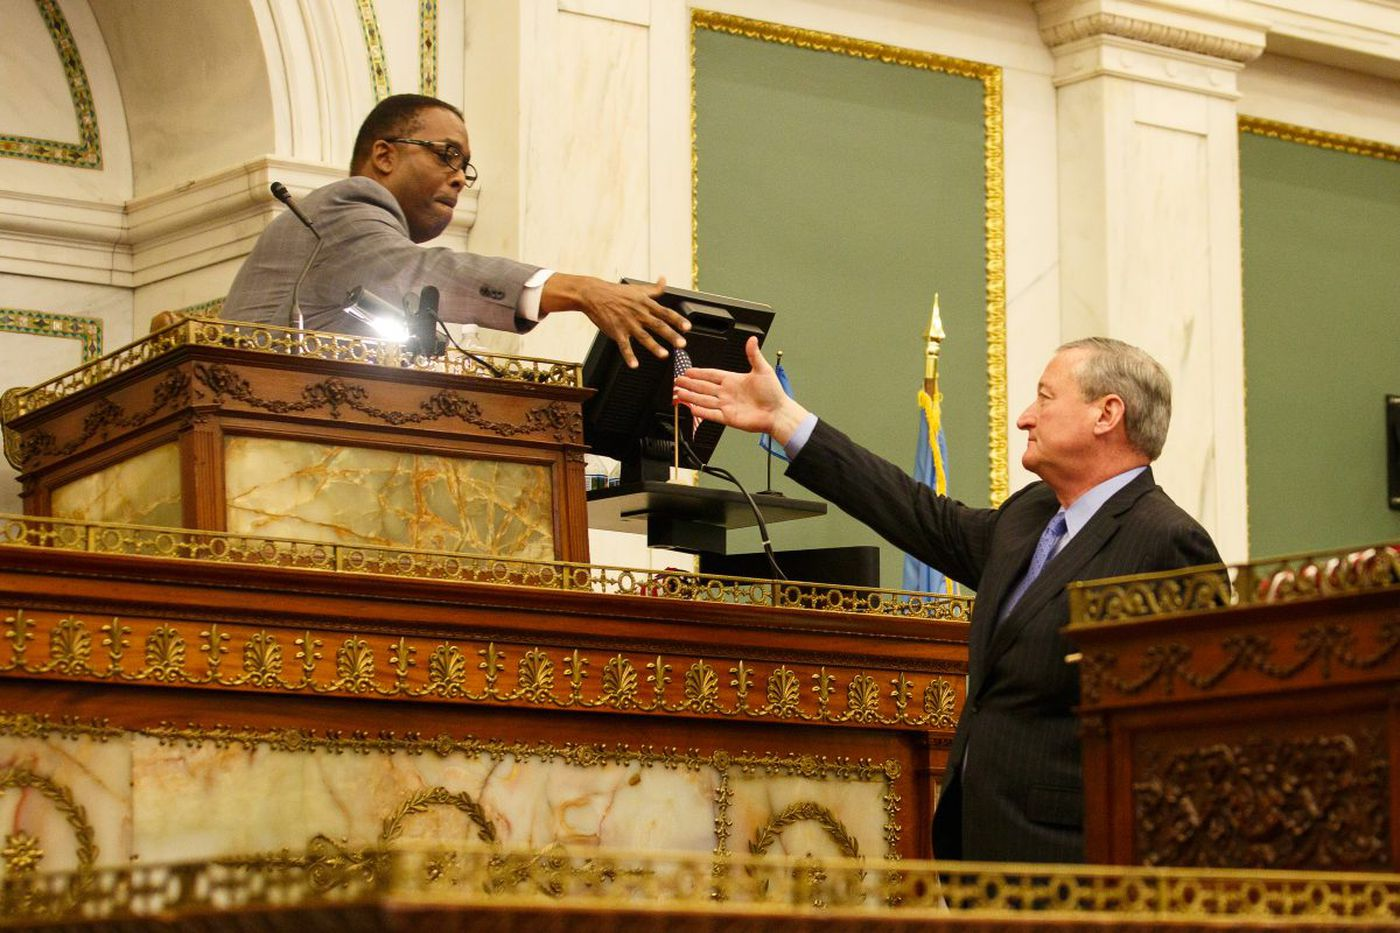 Philly Council should quit stalling on funds to fix parks, rec centers, and libraries | Editorial